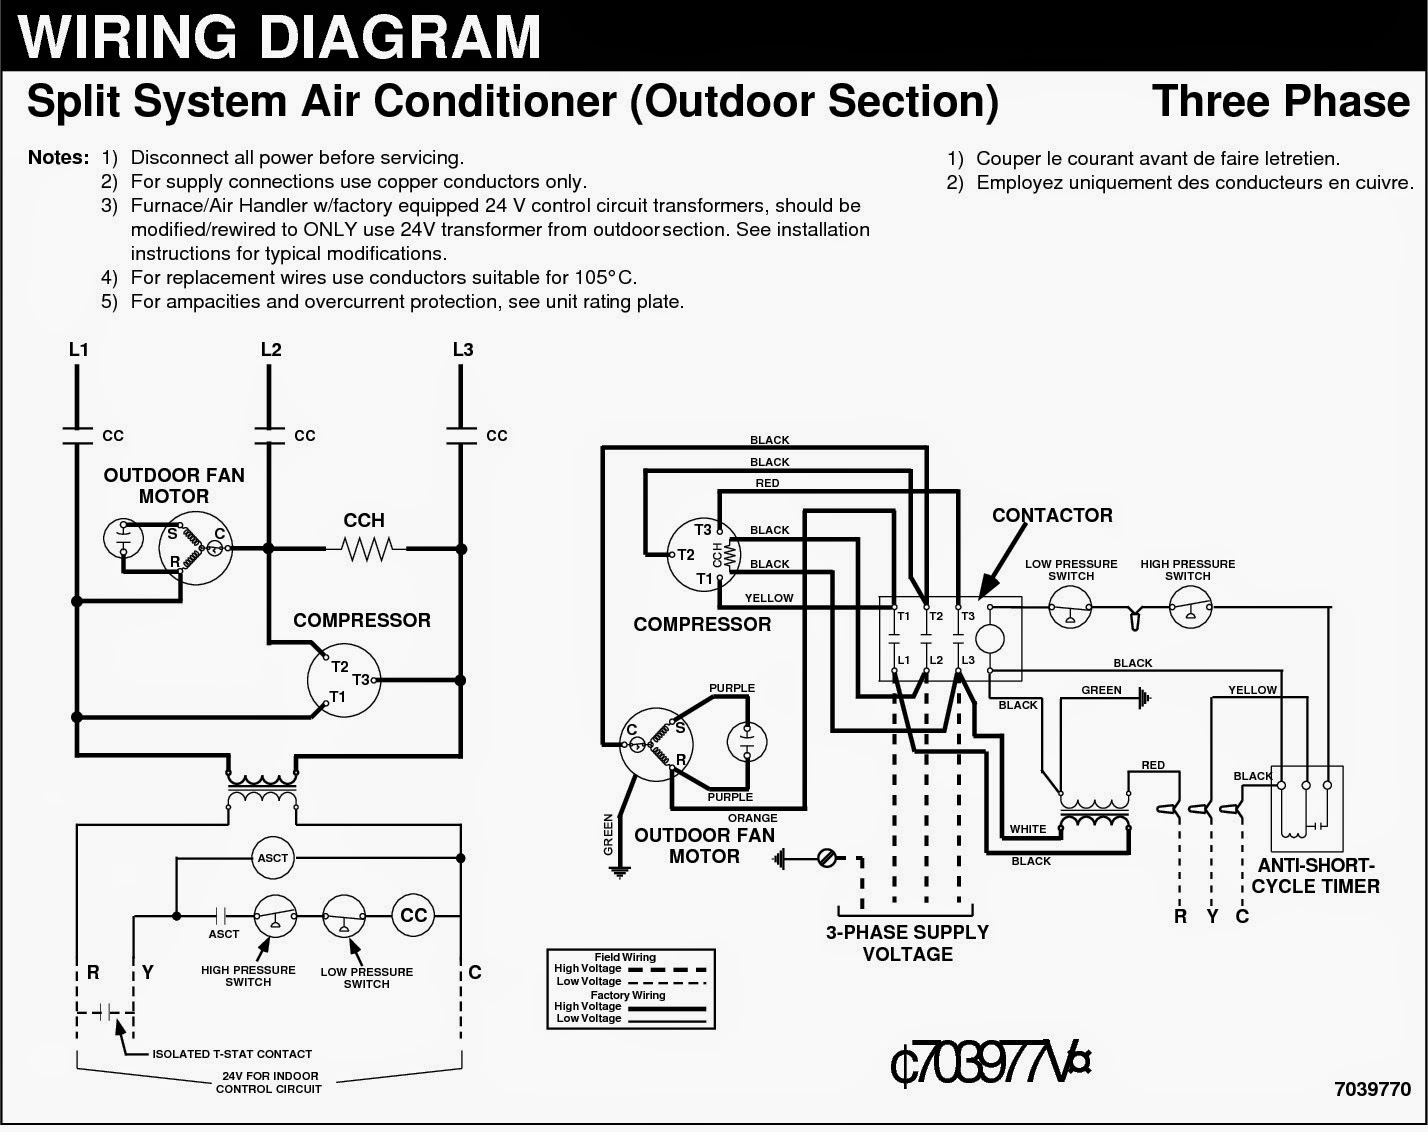 3+phase electrical wiring diagrams for air conditioning systems part two air conditioner compressor wiring diagram at mifinder.co